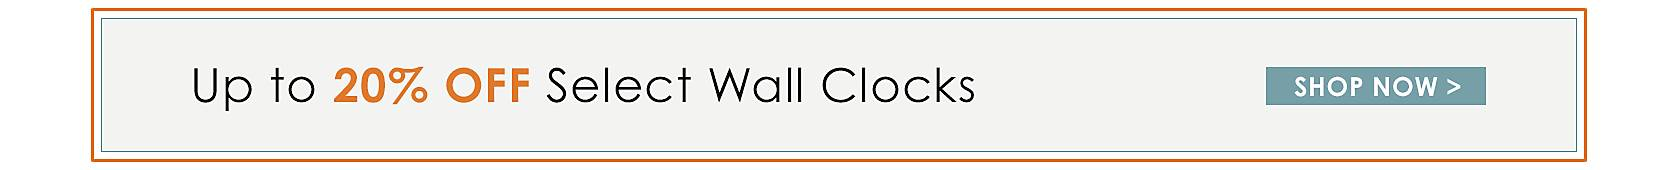 Up to 20% Off Wall Clocks - Shop Now